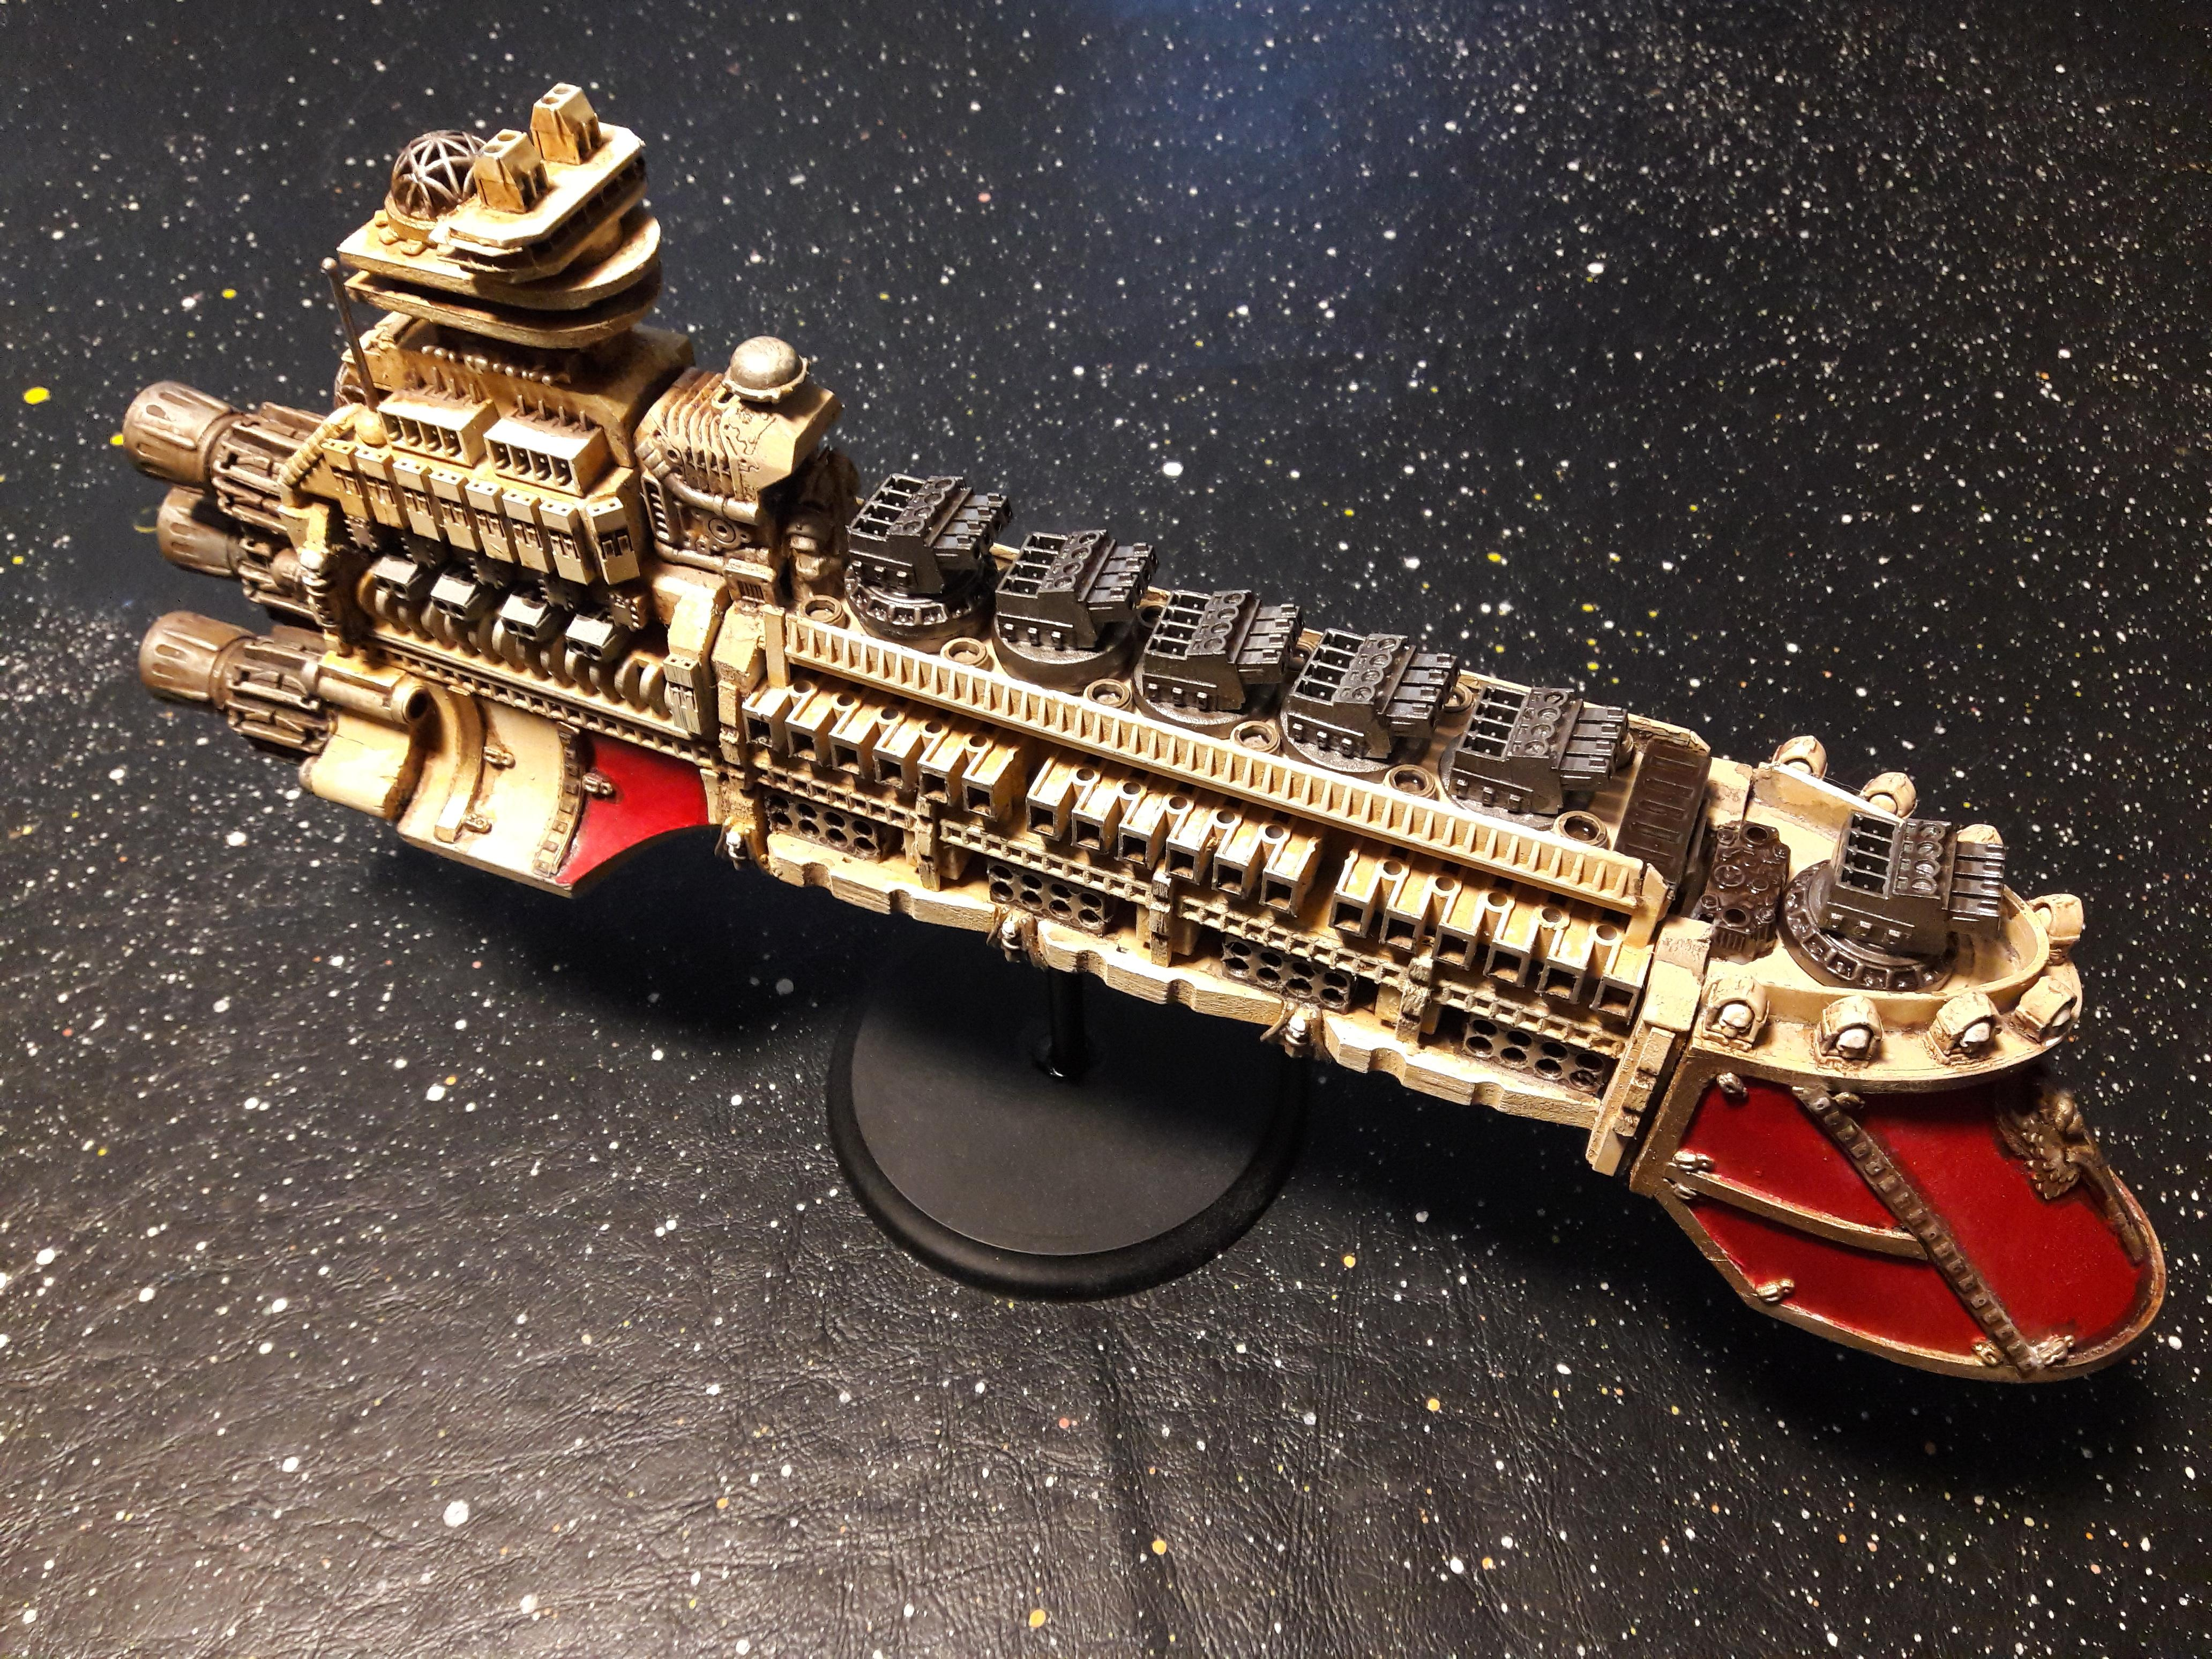 Battlefleet Gothic, Battleship, Cruiser, Imperial, Minis, Rogue Trader, Rpg, Scratch Build, Terrain